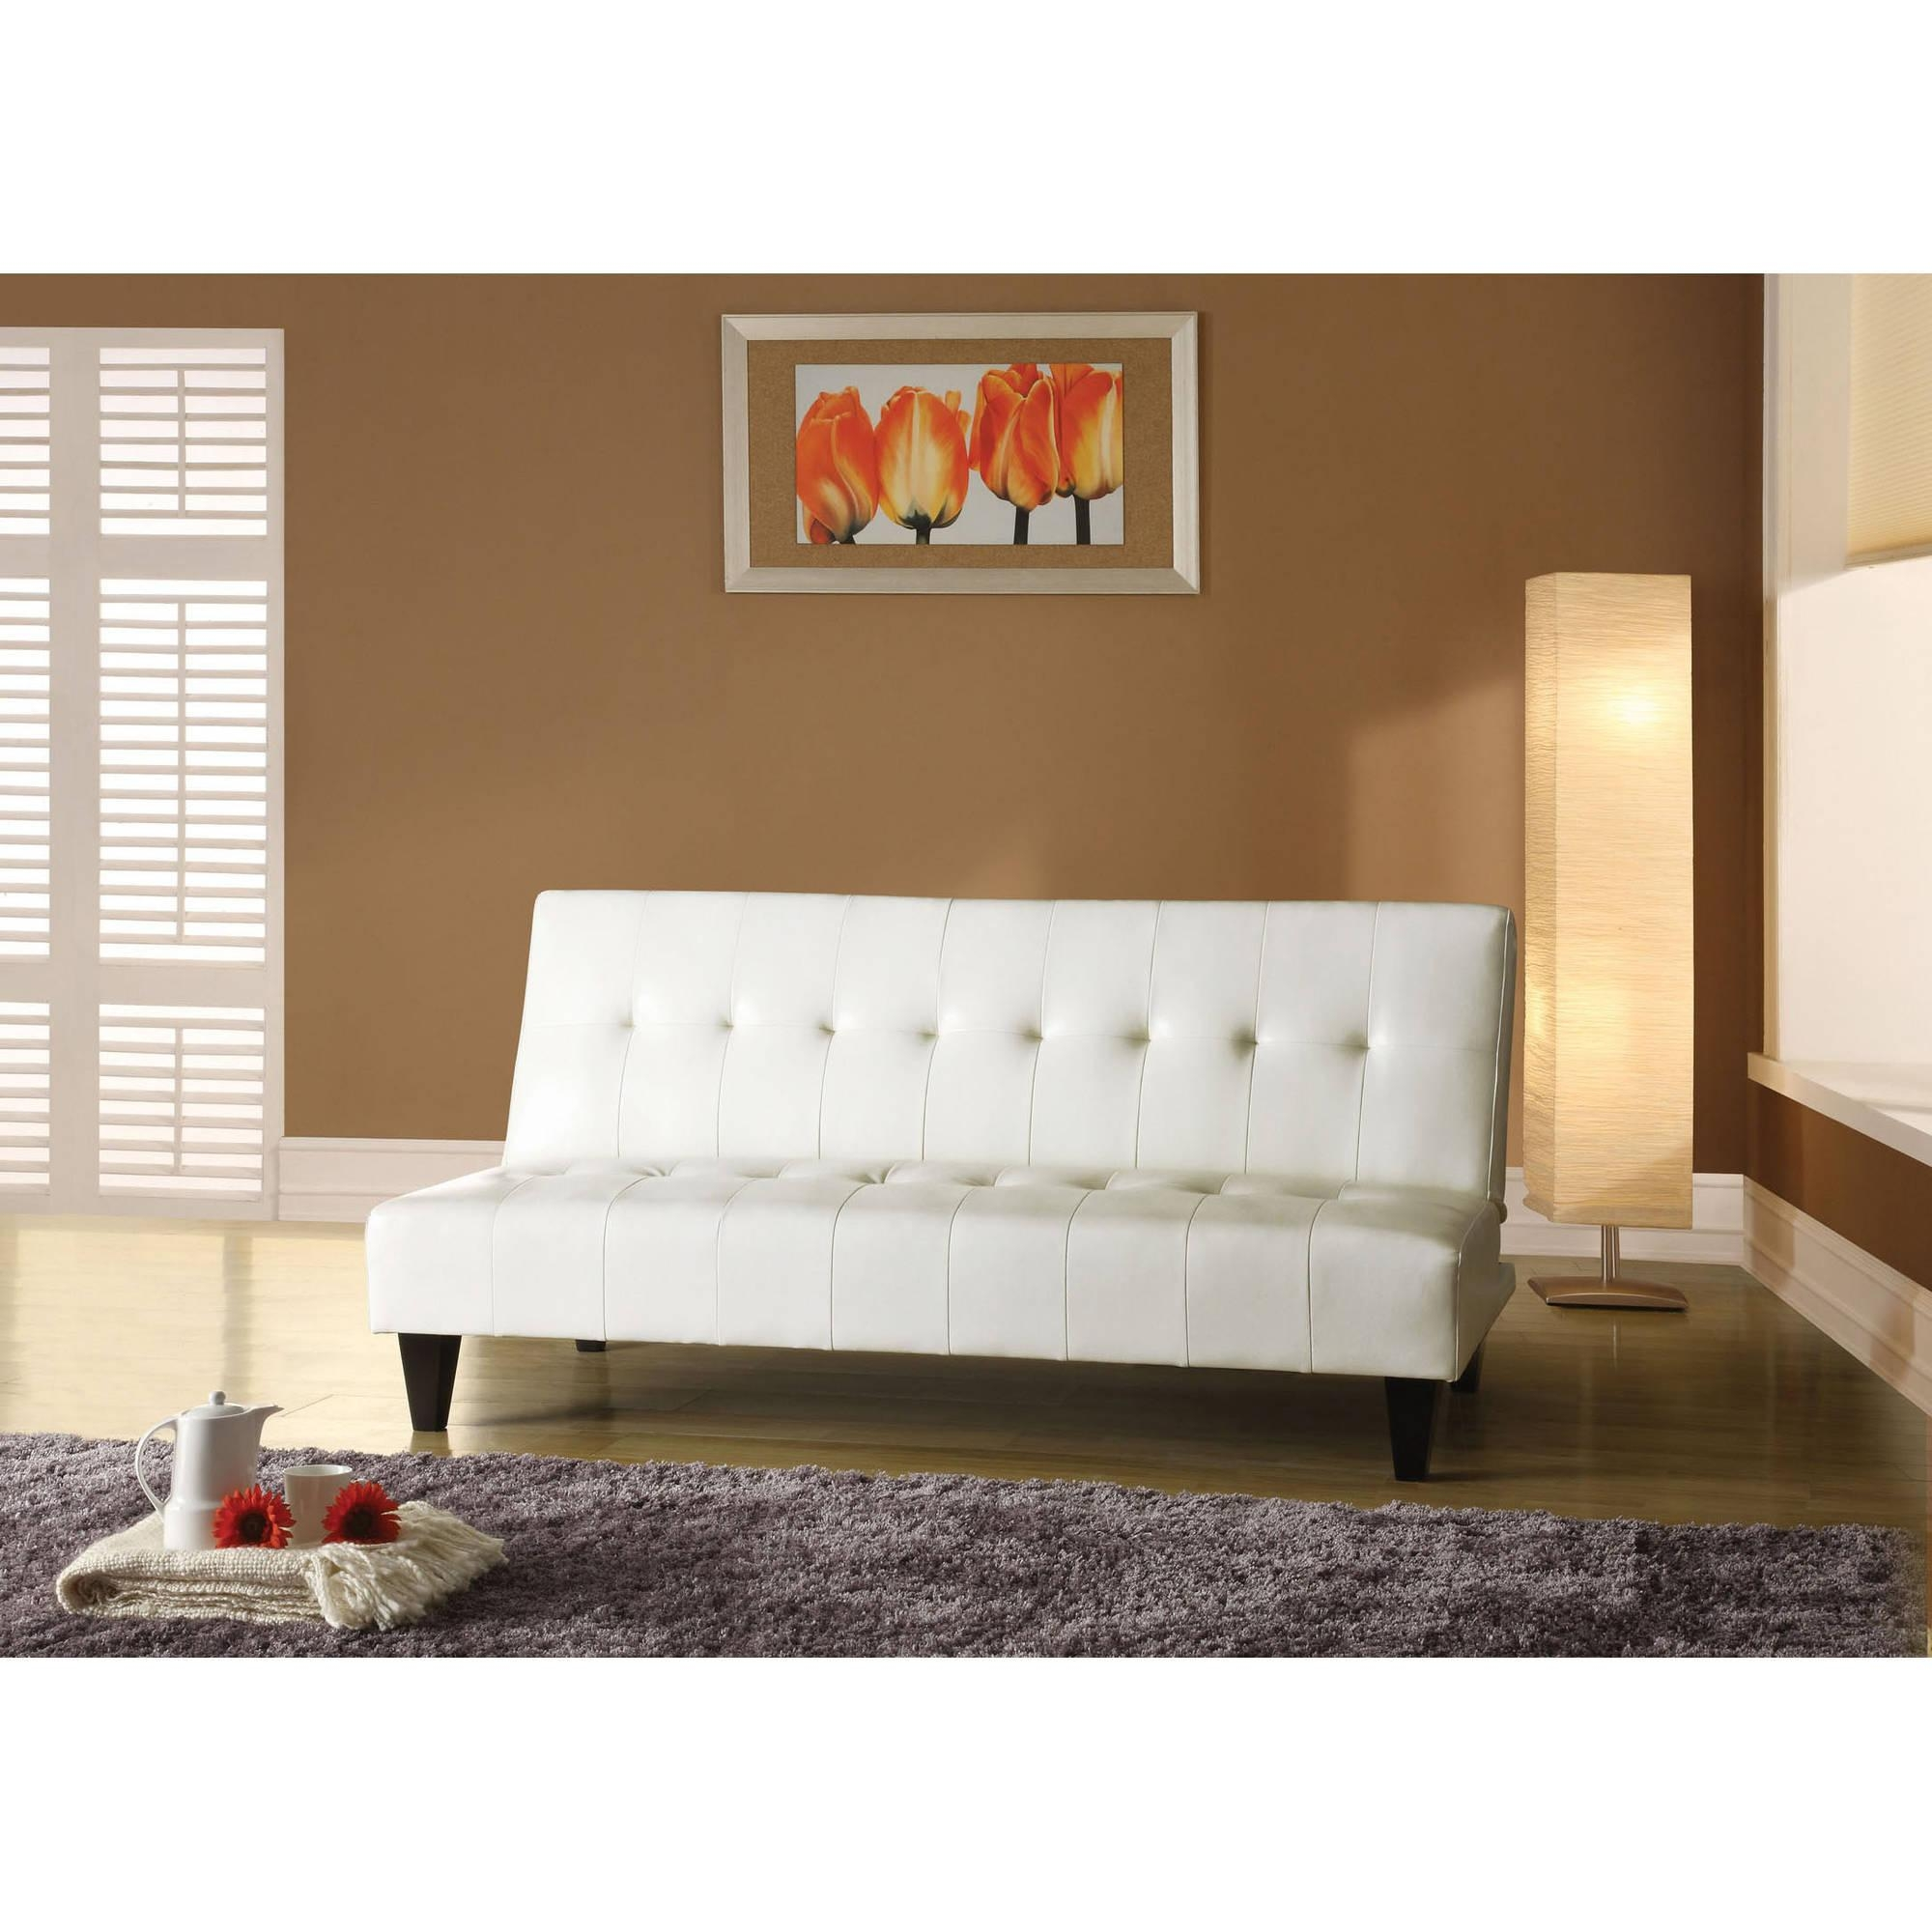 Ikea Sleeper Sofa Leather Sectional Usa Reviews Covers | Tugrahan With Regard To Castro Convertible Sofas (View 18 of 20)